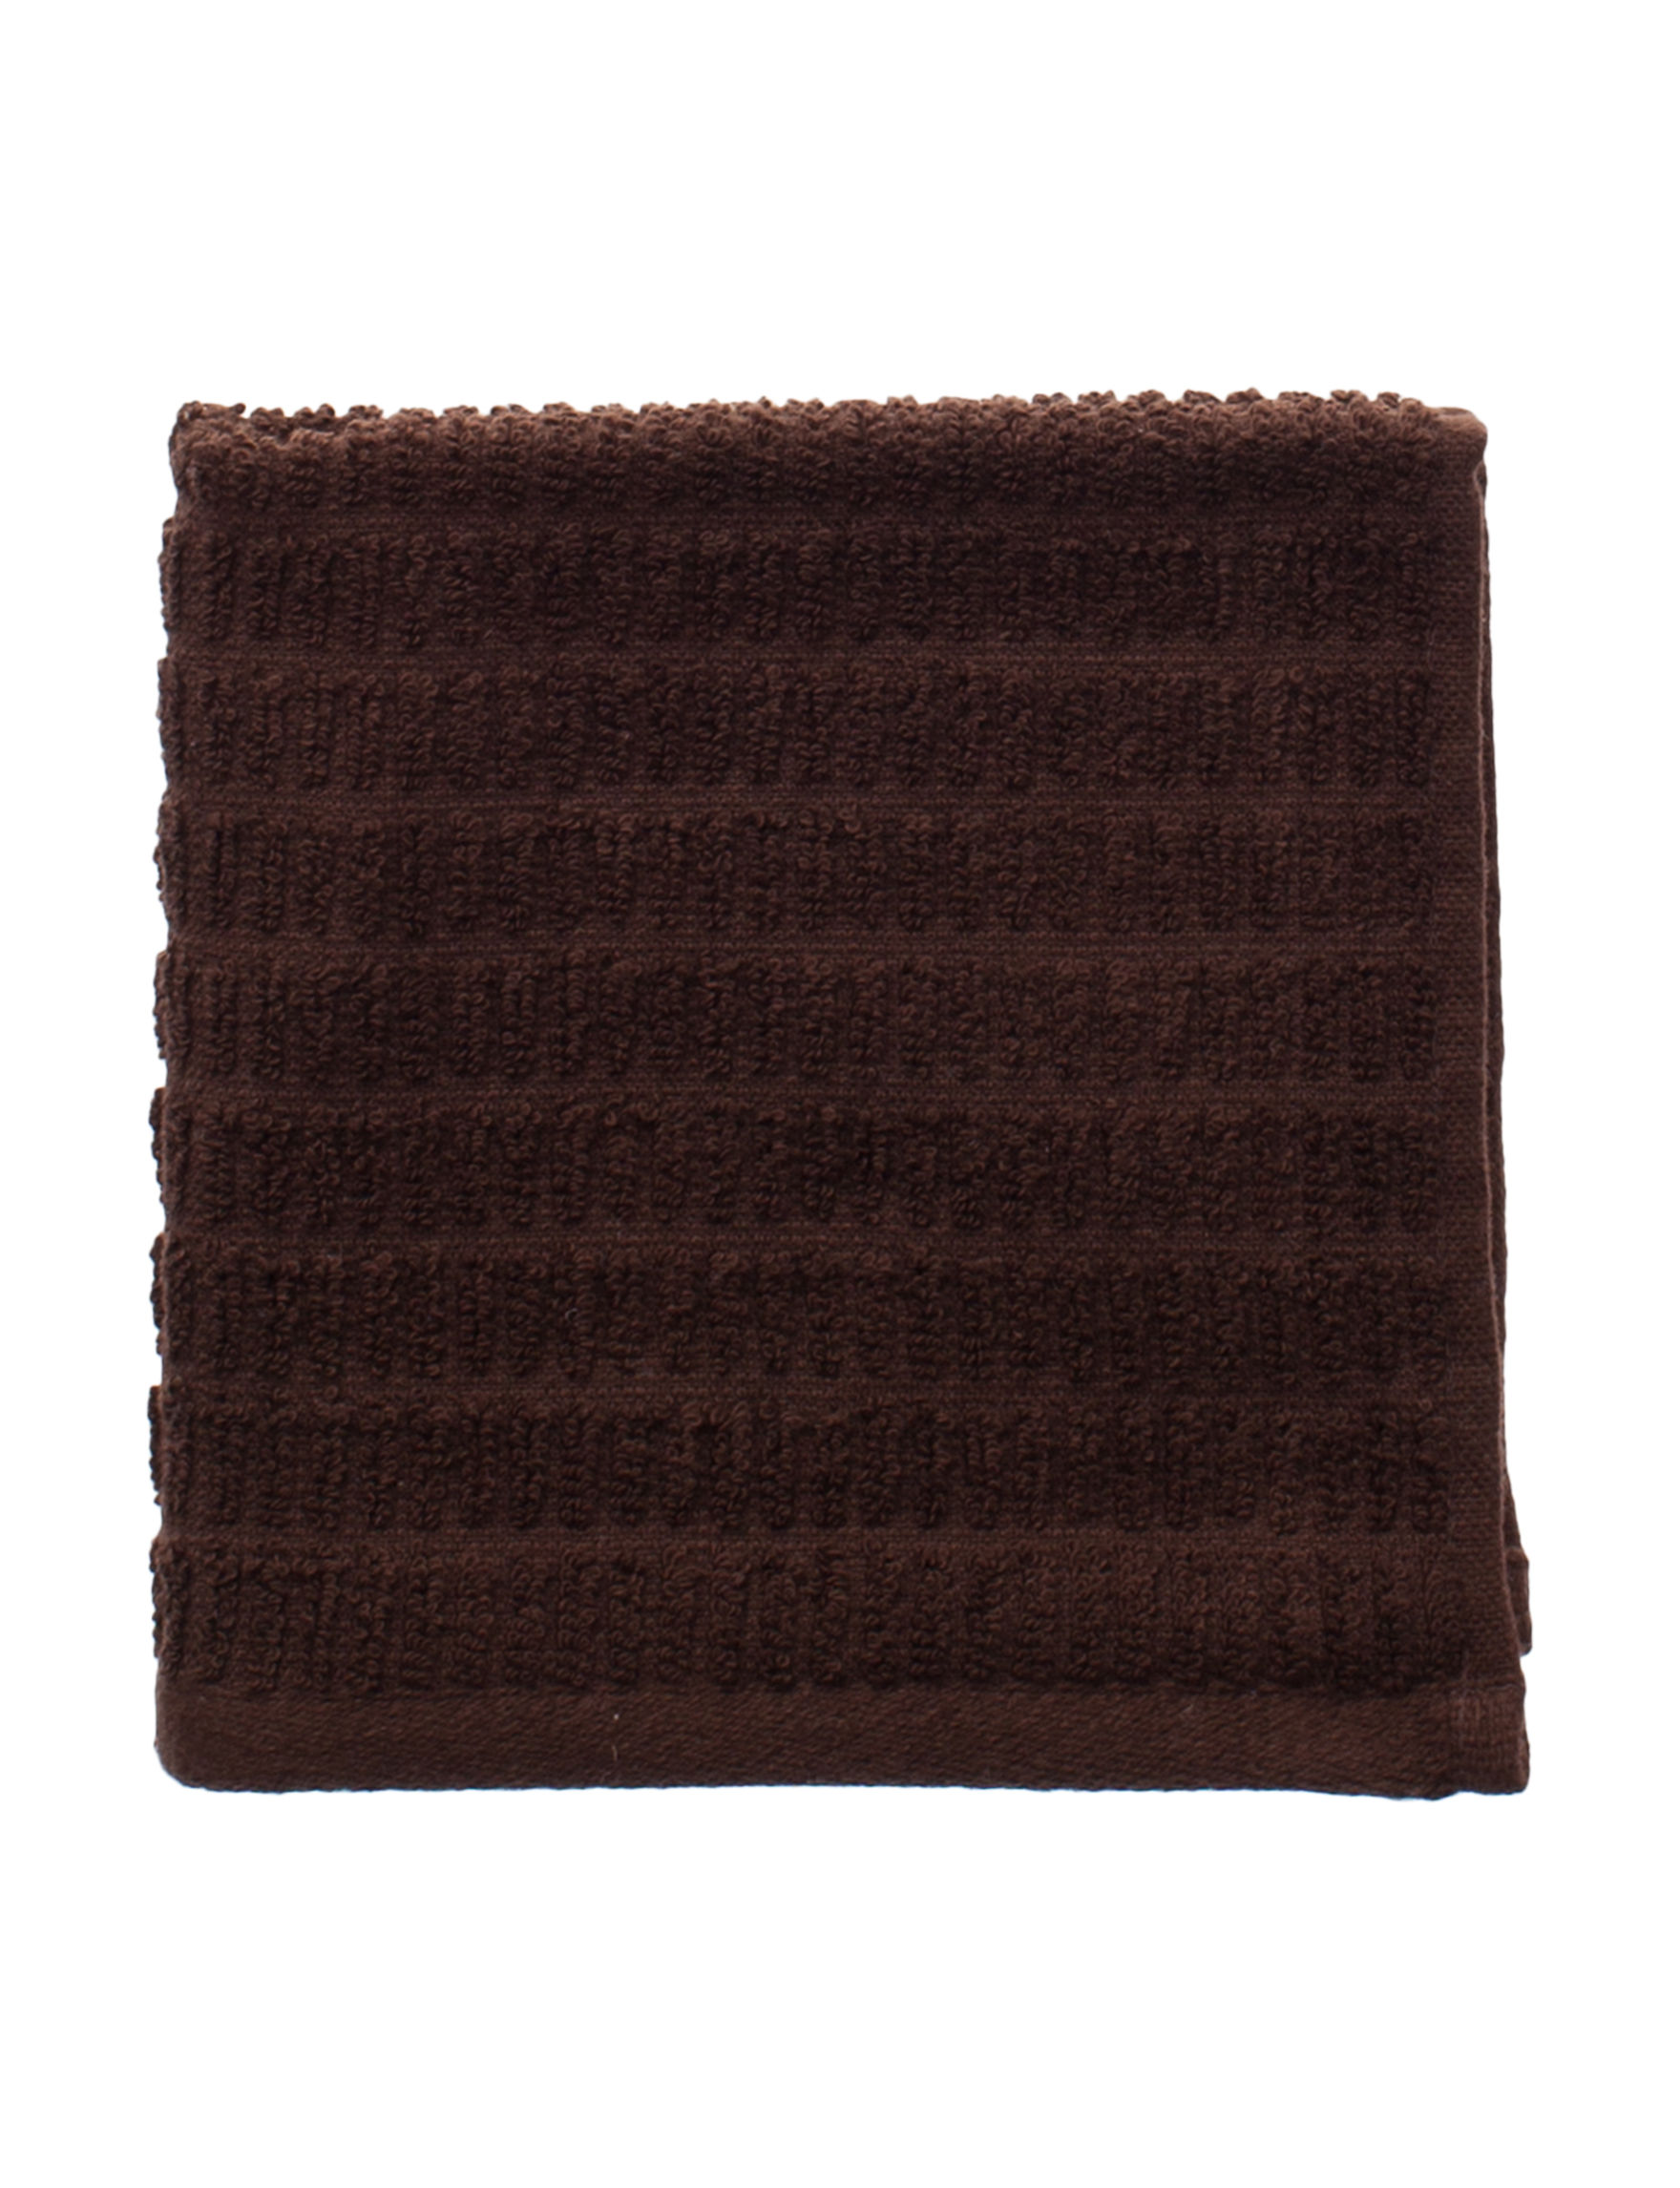 Great Hotels Collection Brown Washcloths Towels